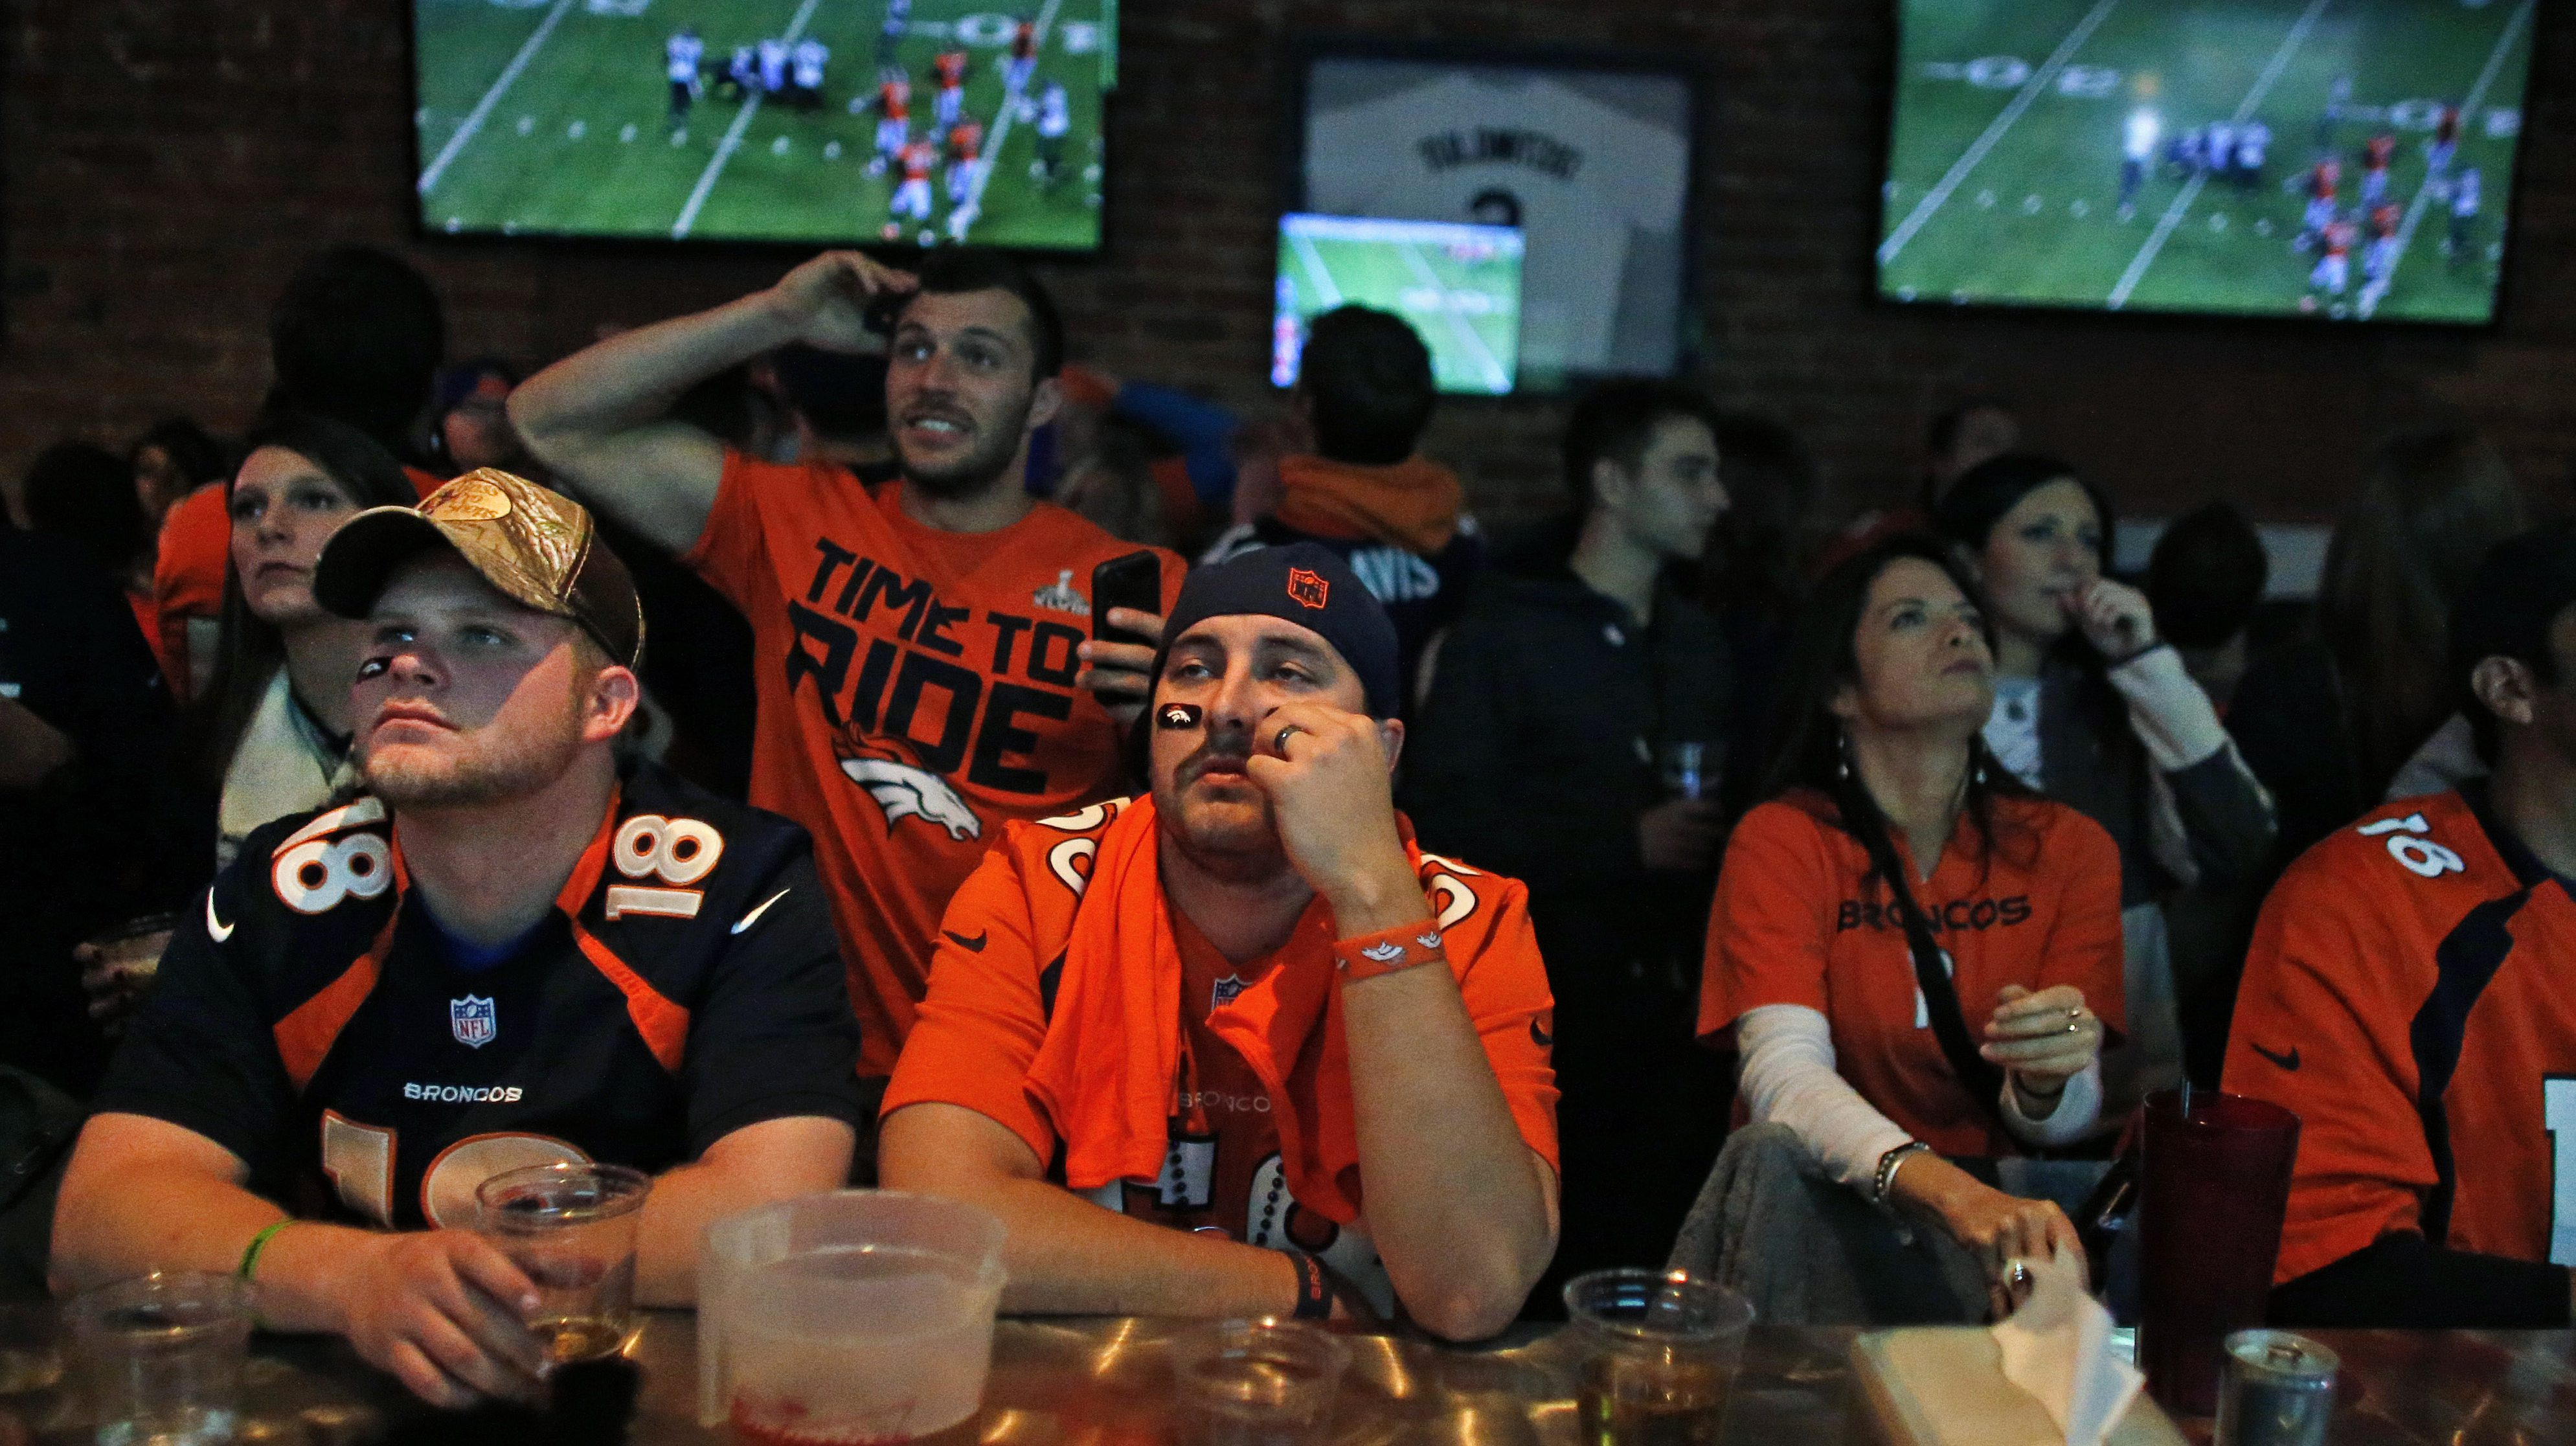 """FILE - In this Feb. 2, 2014 file photo, Denver Broncos fans watch their team play the Seahawks during the first half of the Super Bowl, inside Jackson's, a sports bar and grill in Denver. Senators from both parties warned the National Football League Thursday to get rid of a 4-decade-old TV """"blackout"""" rule or risk congressional action to restrict the league's lucrative antitrust exemption, which allows NFL teams to negotiate radio and television broadcast rights together.  (AP Photo/Brennan Linsley, File)"""